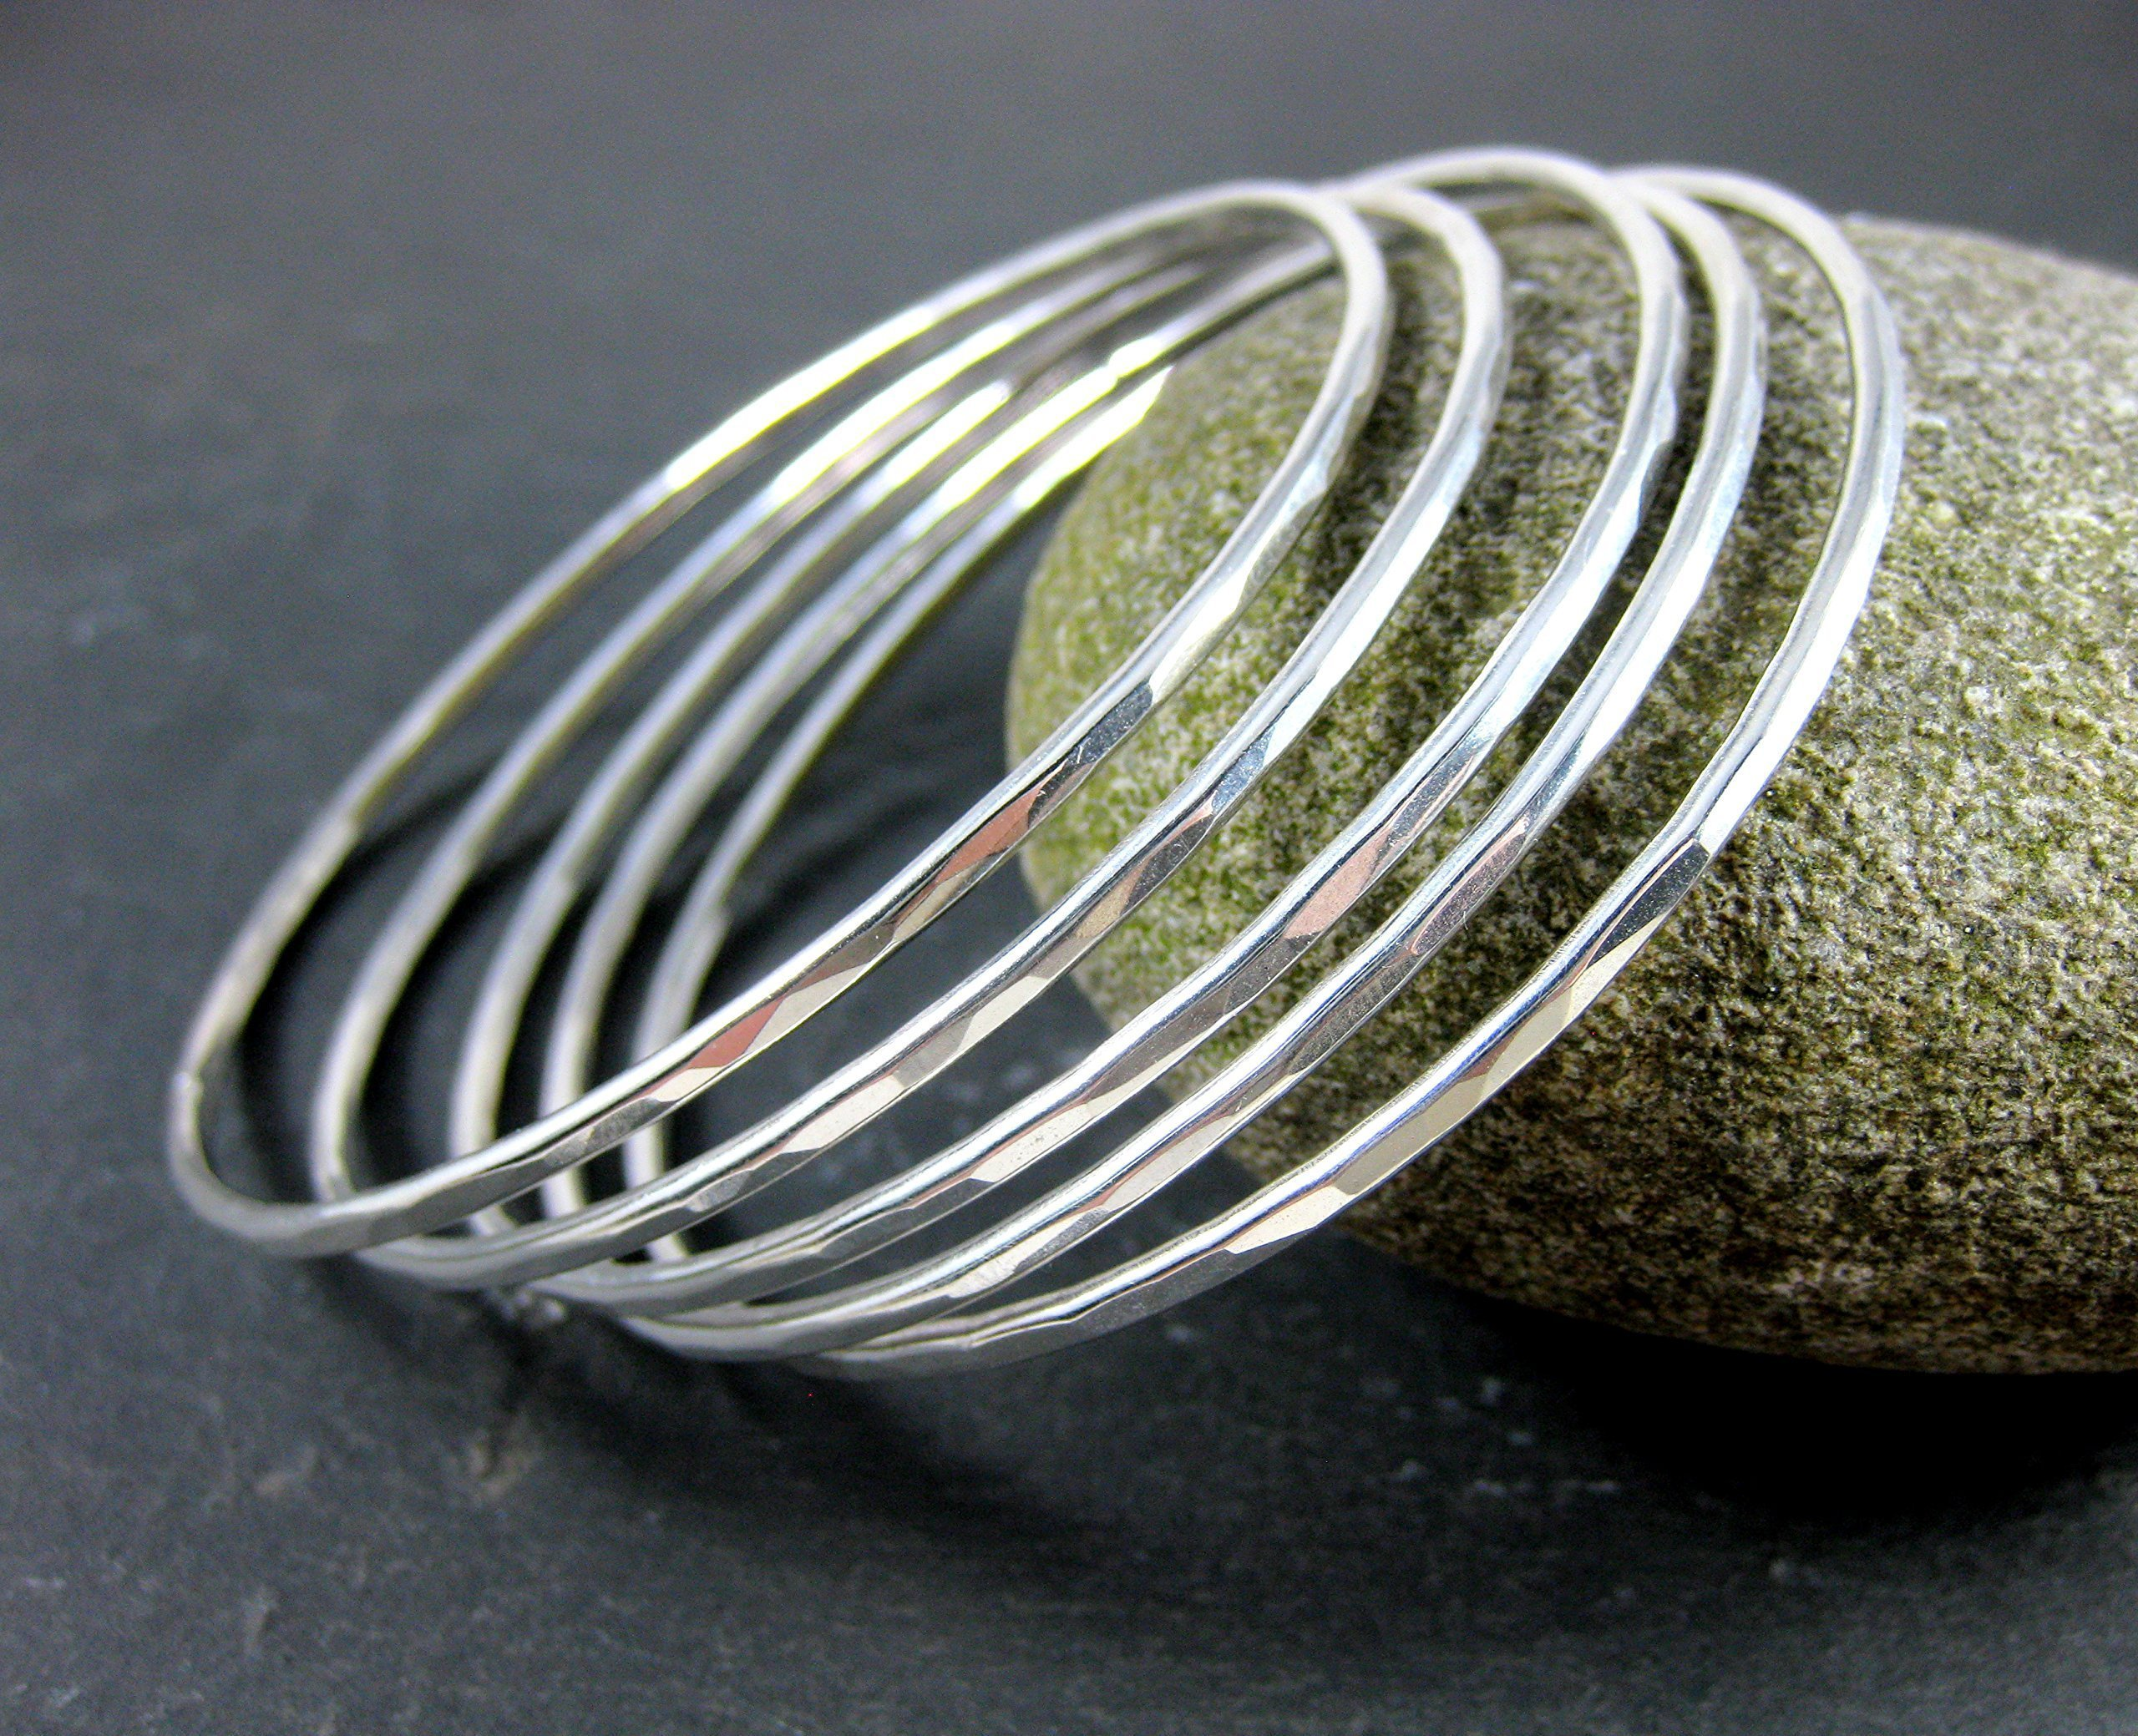 5 Silver Bangles Hammered Solid Sterling Silver Jewelry by Glass River Jewelry